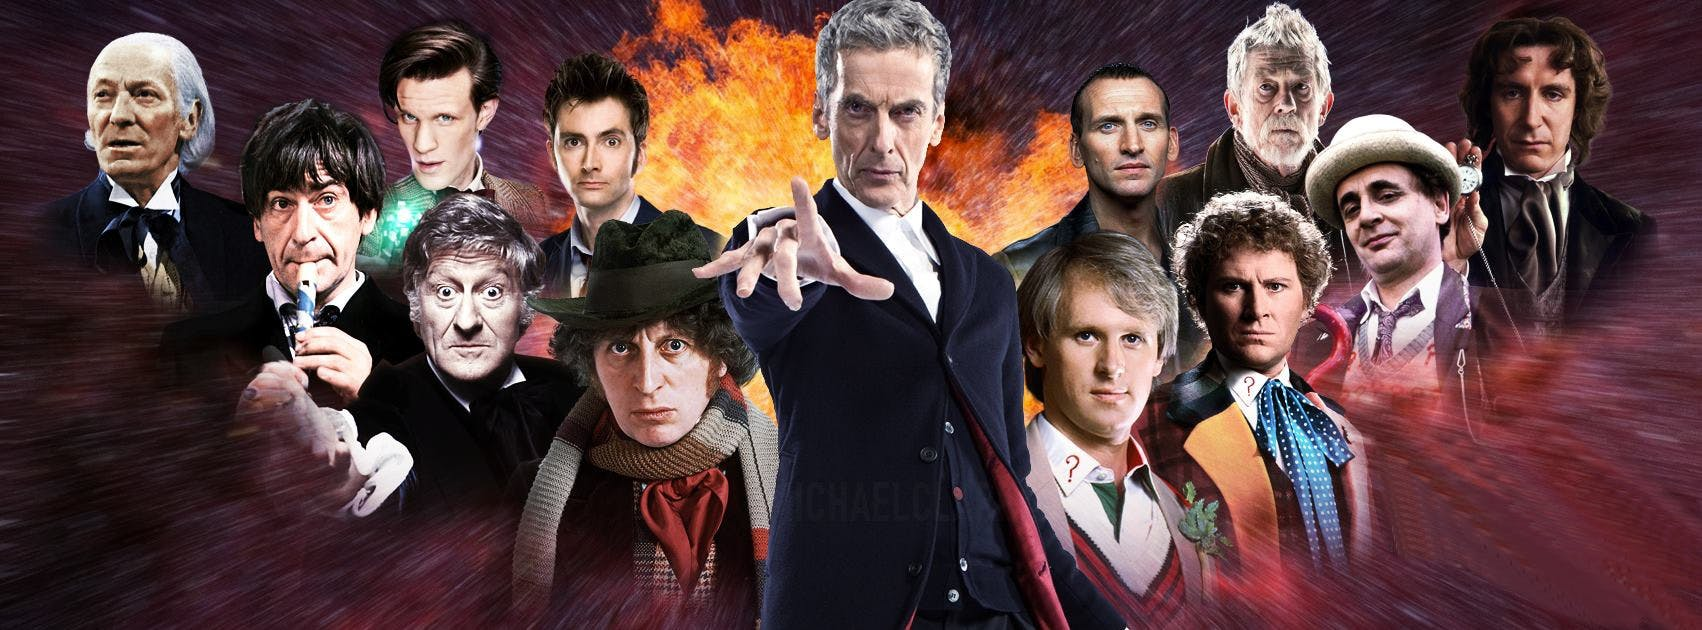 Doctor Who x loads